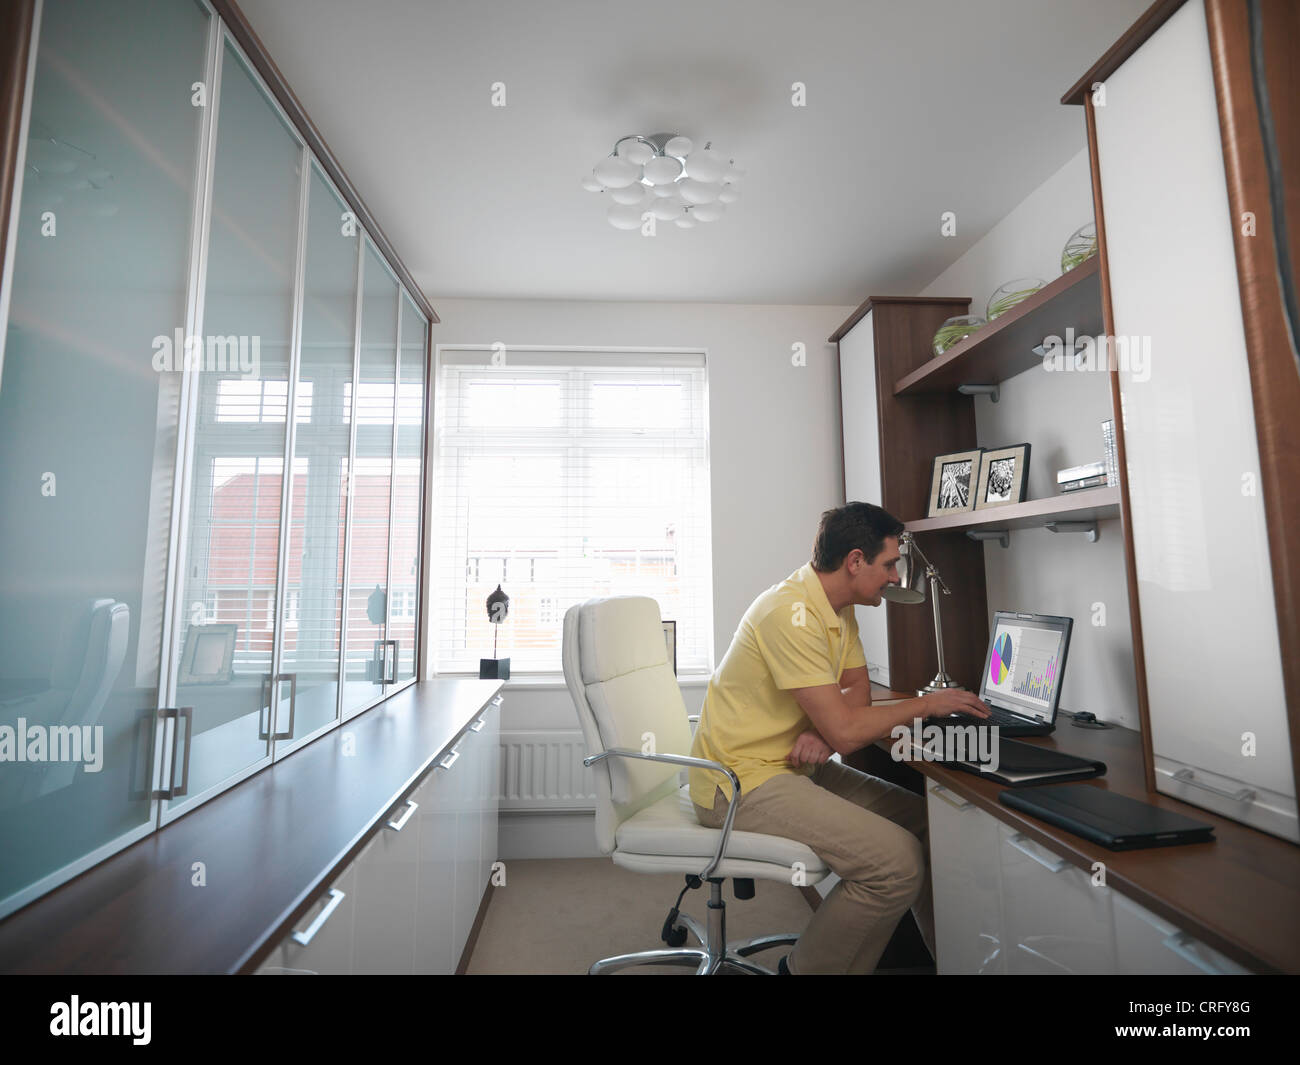 Man working on laptop in home office - Stock Image